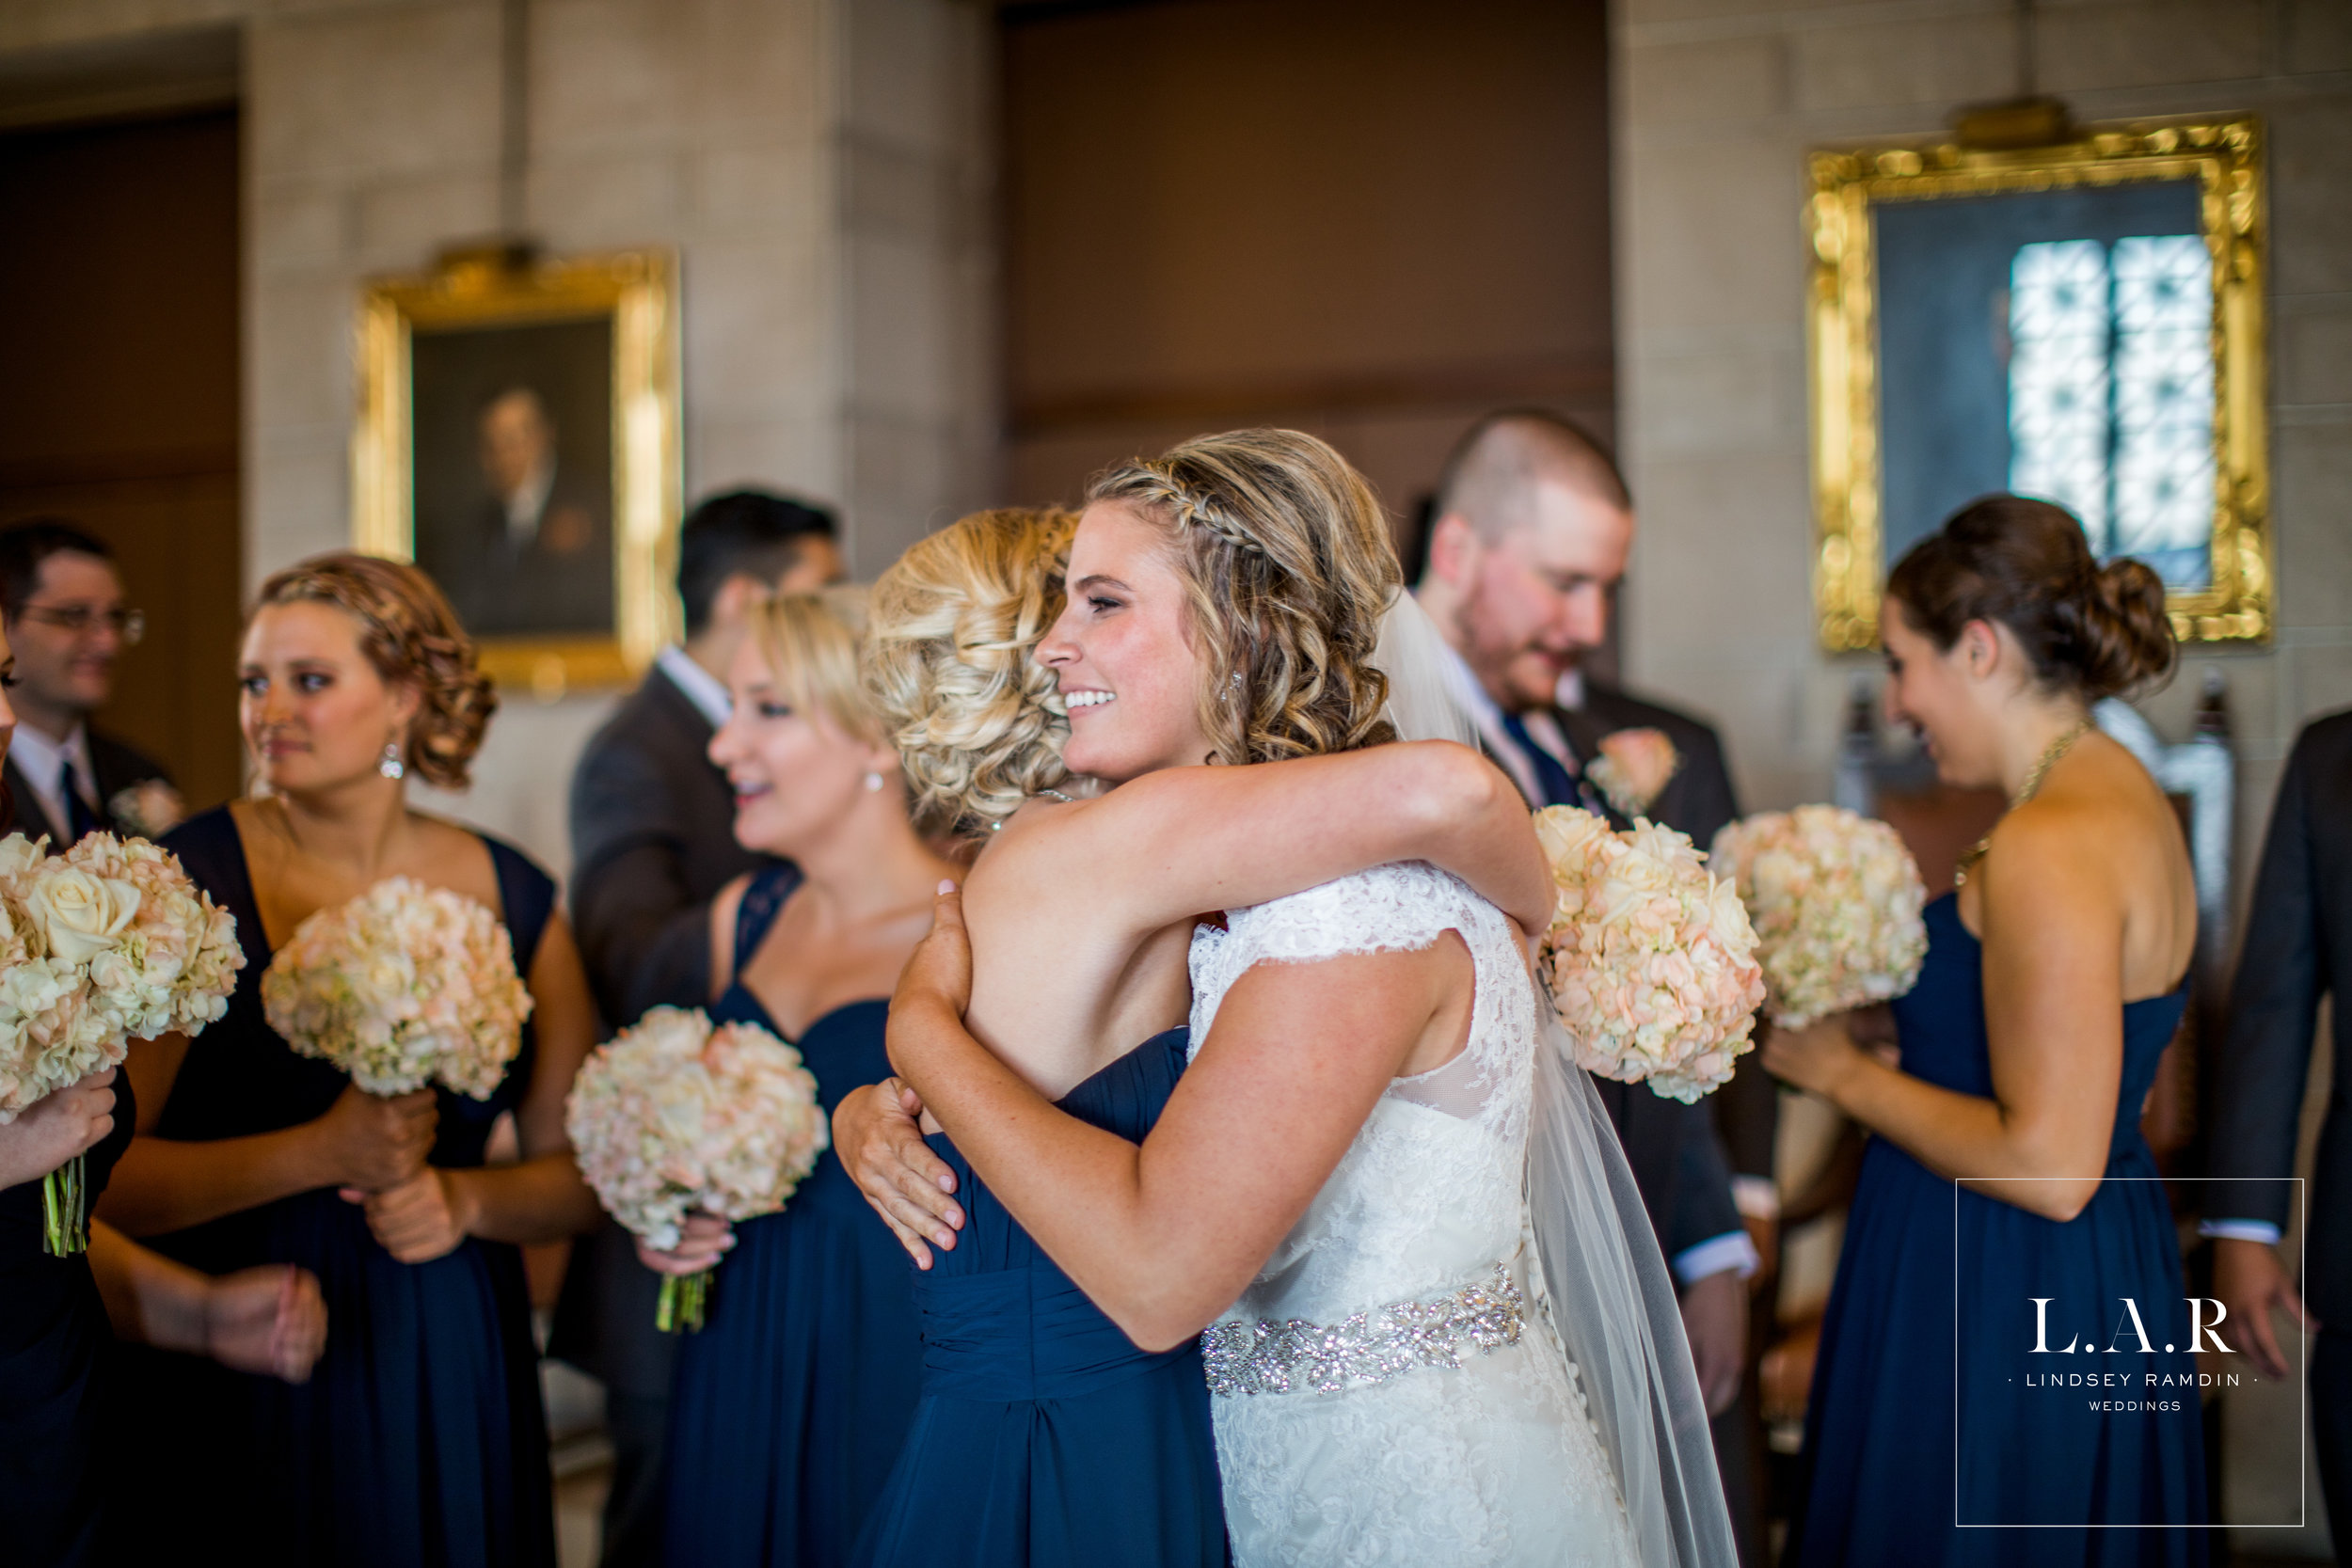 My favorite part of the day: these sweet moments right after the ceremony!